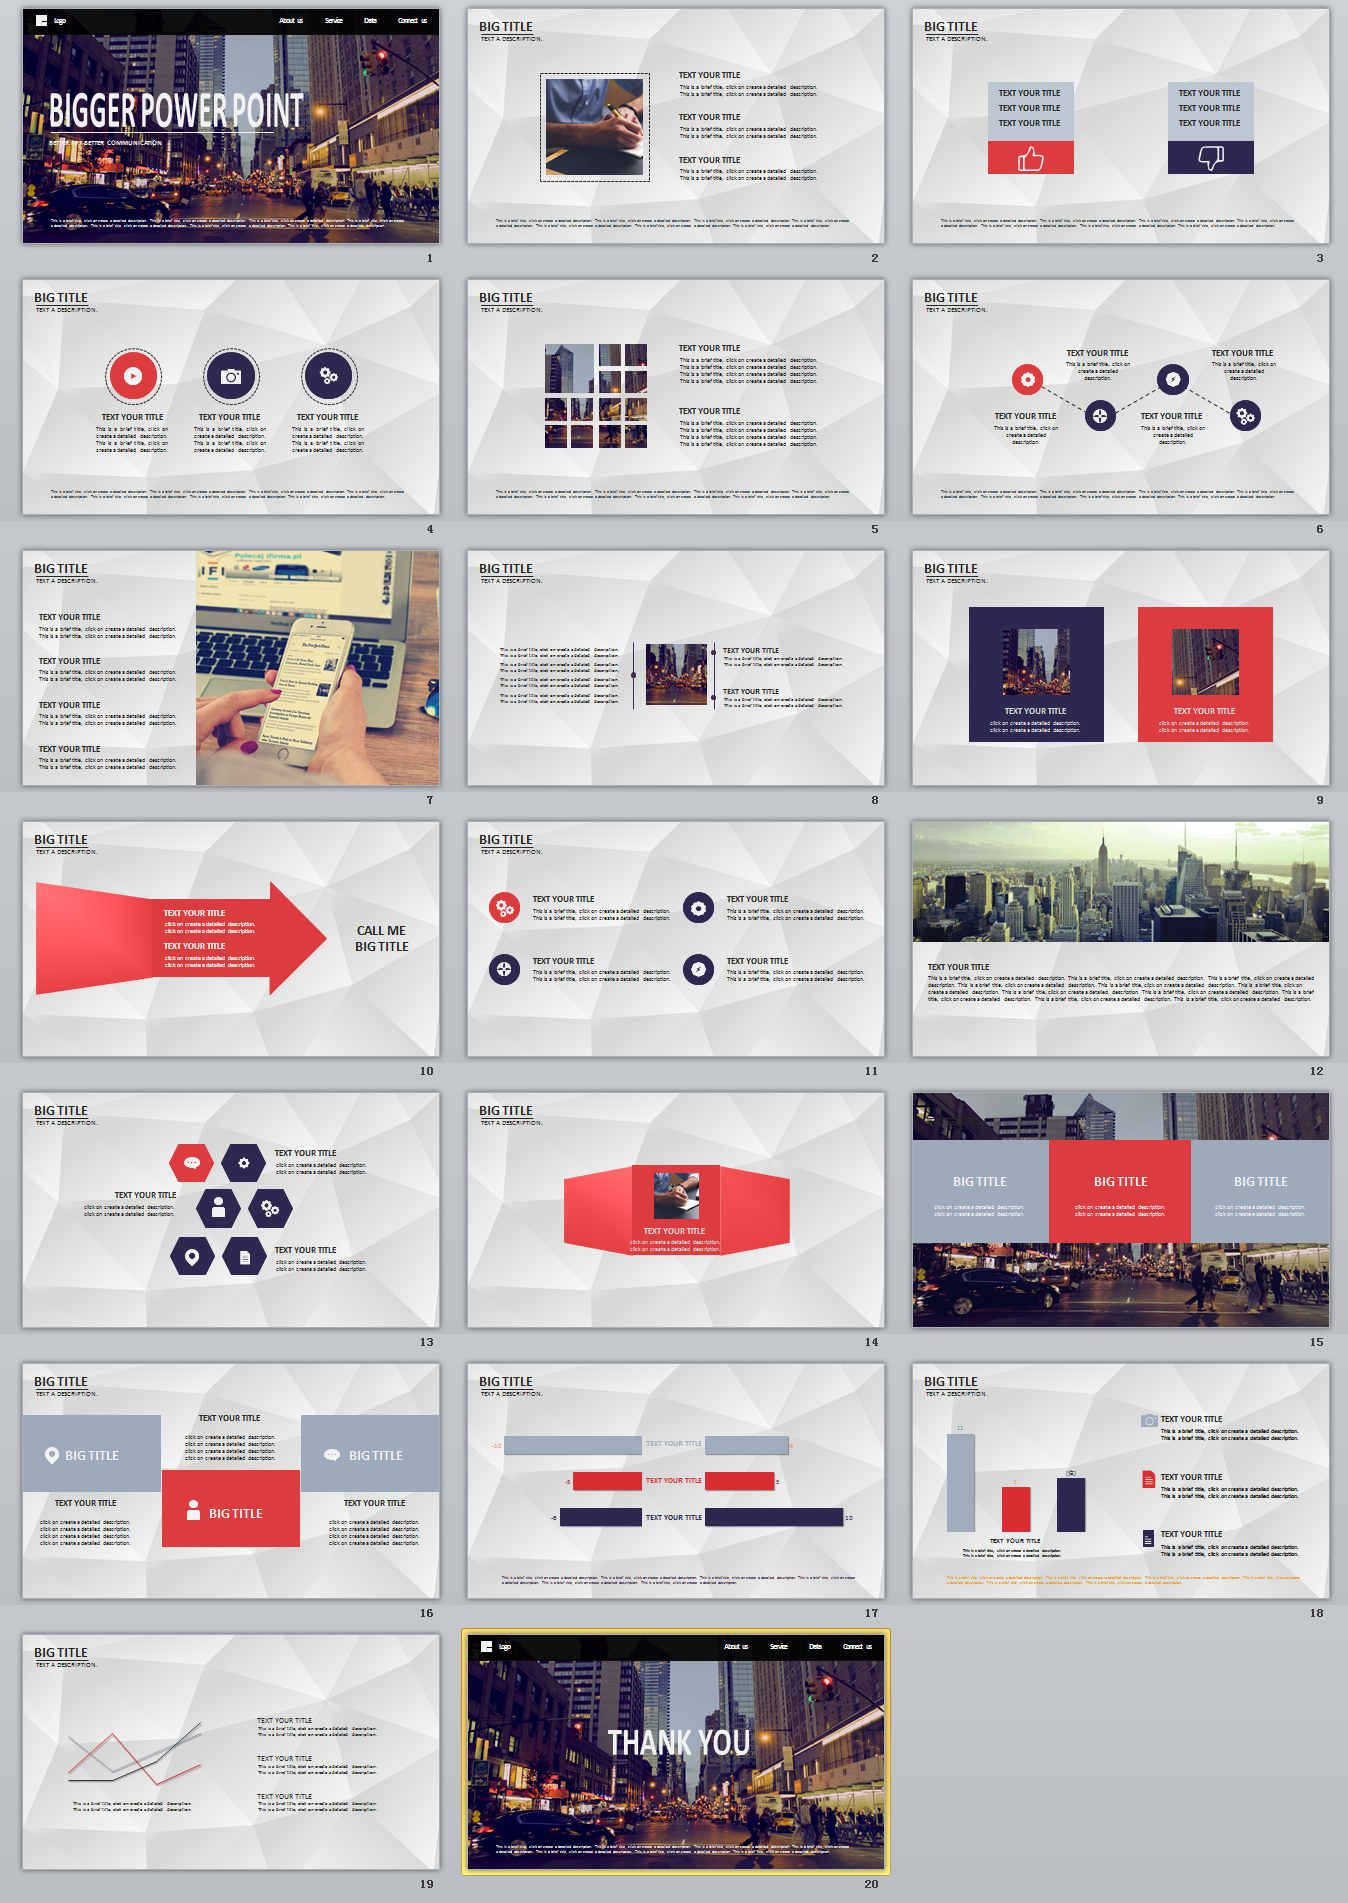 Bigger Professional Powerpoint Templates  The Highest Quality